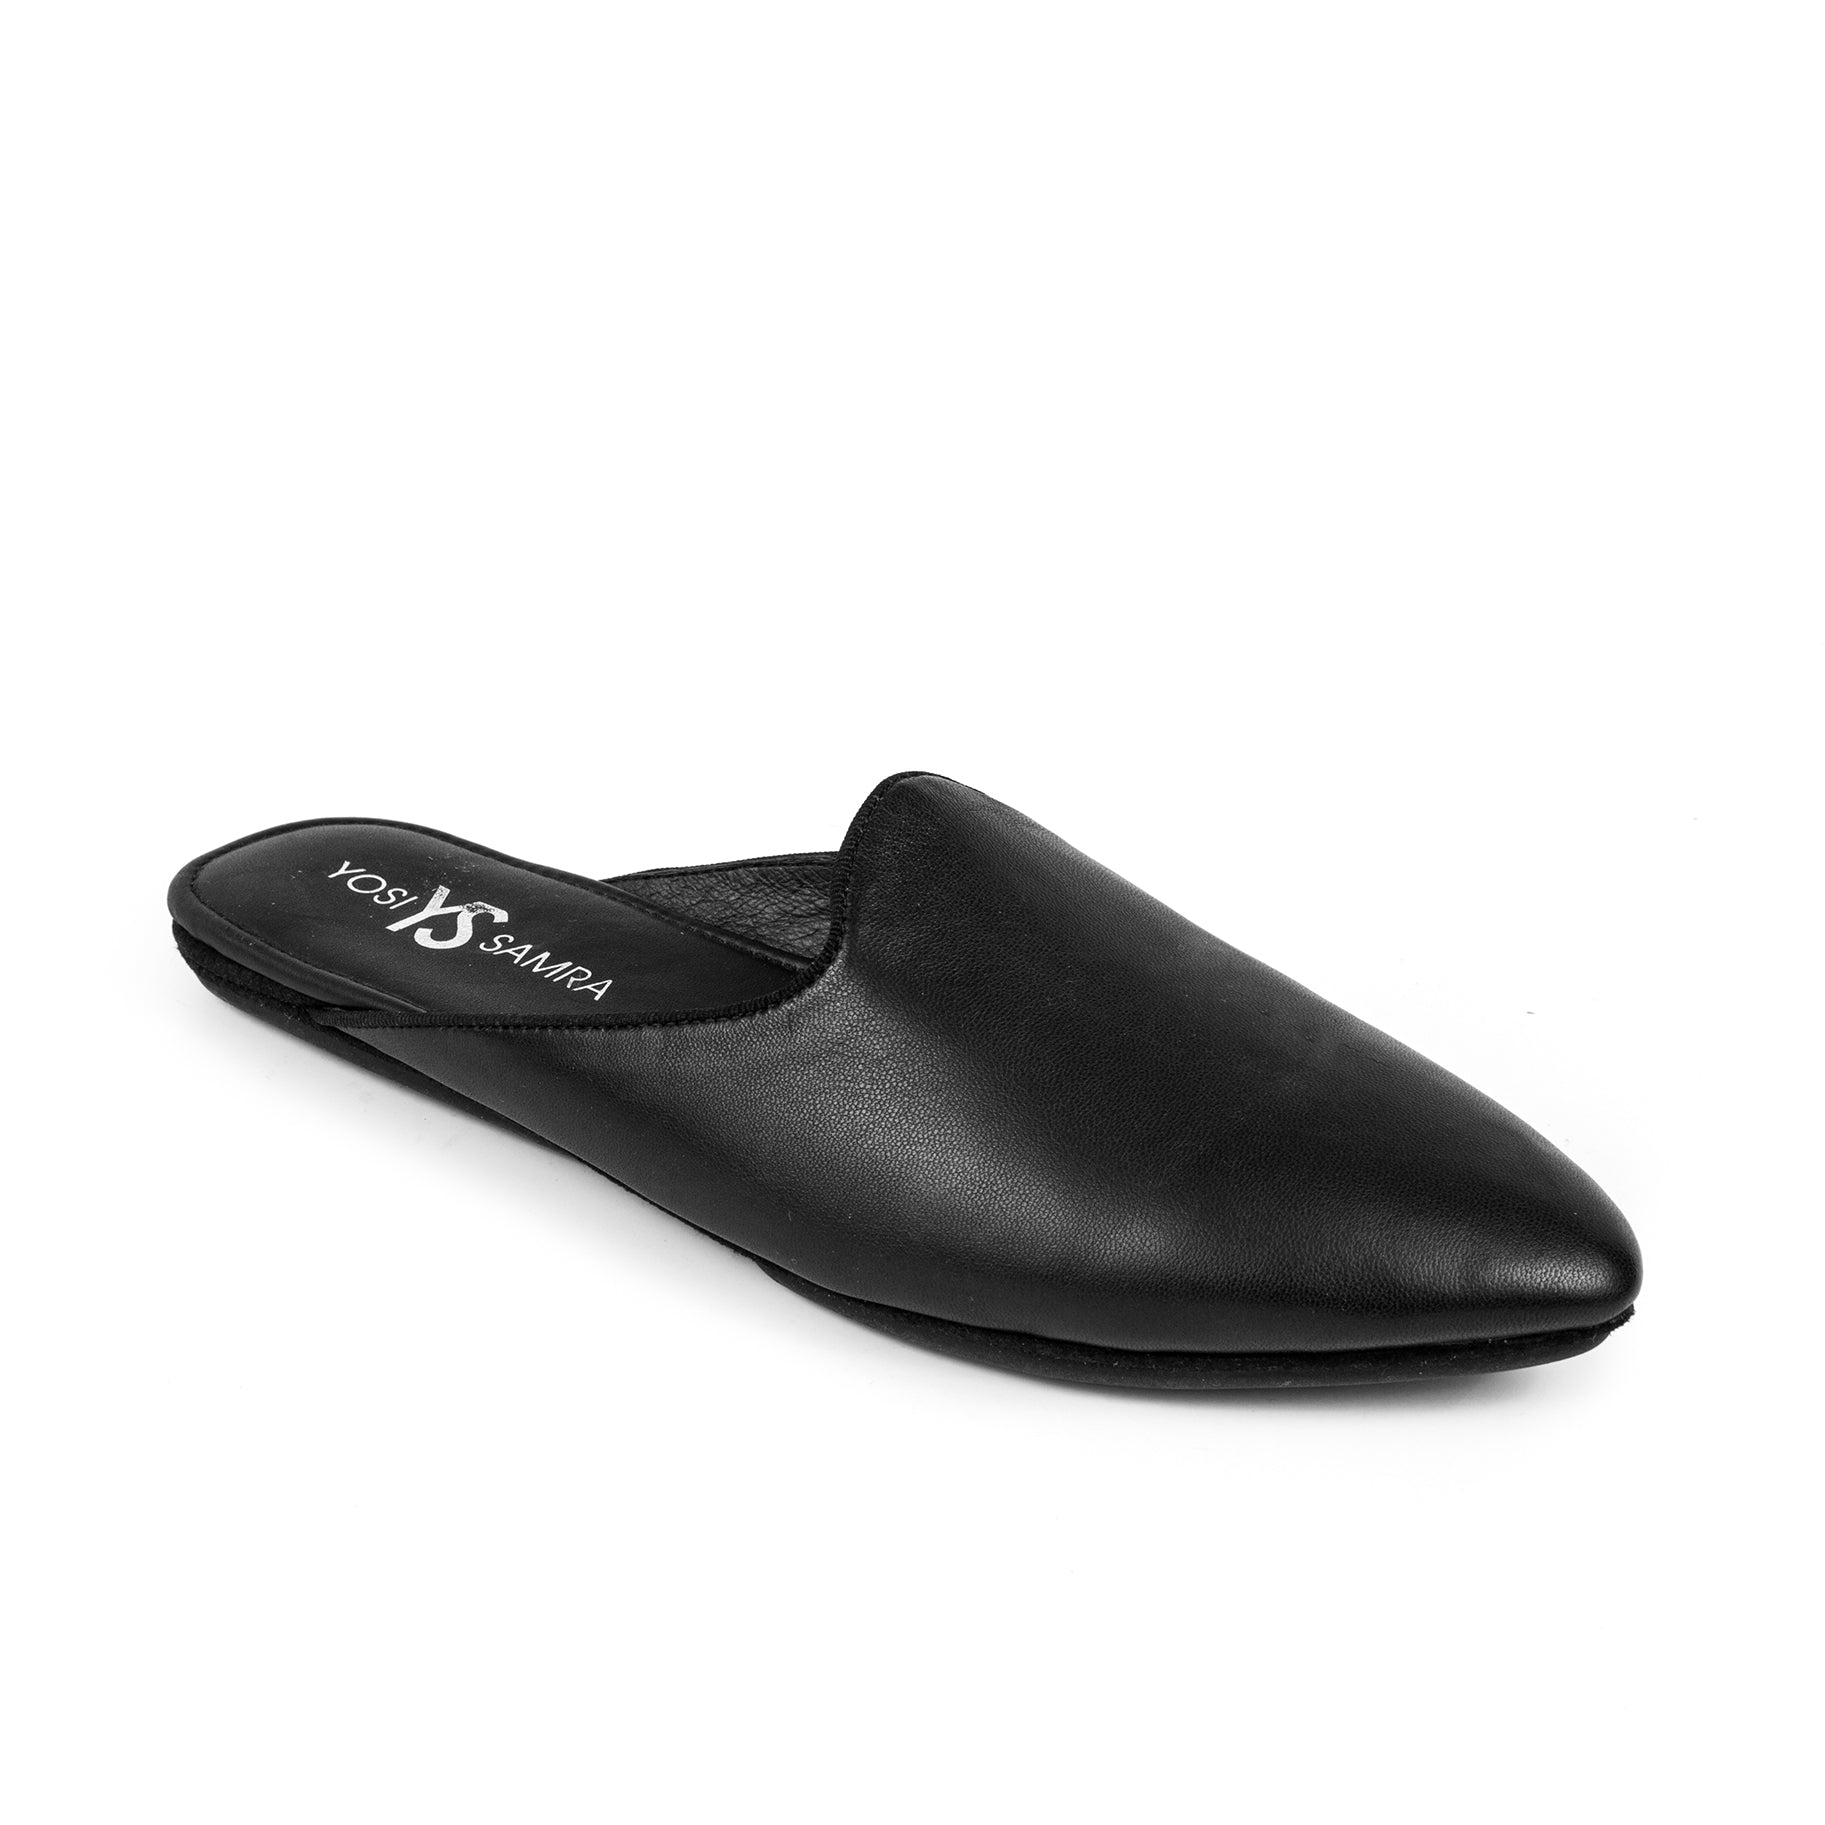 yosi samra black leather mule